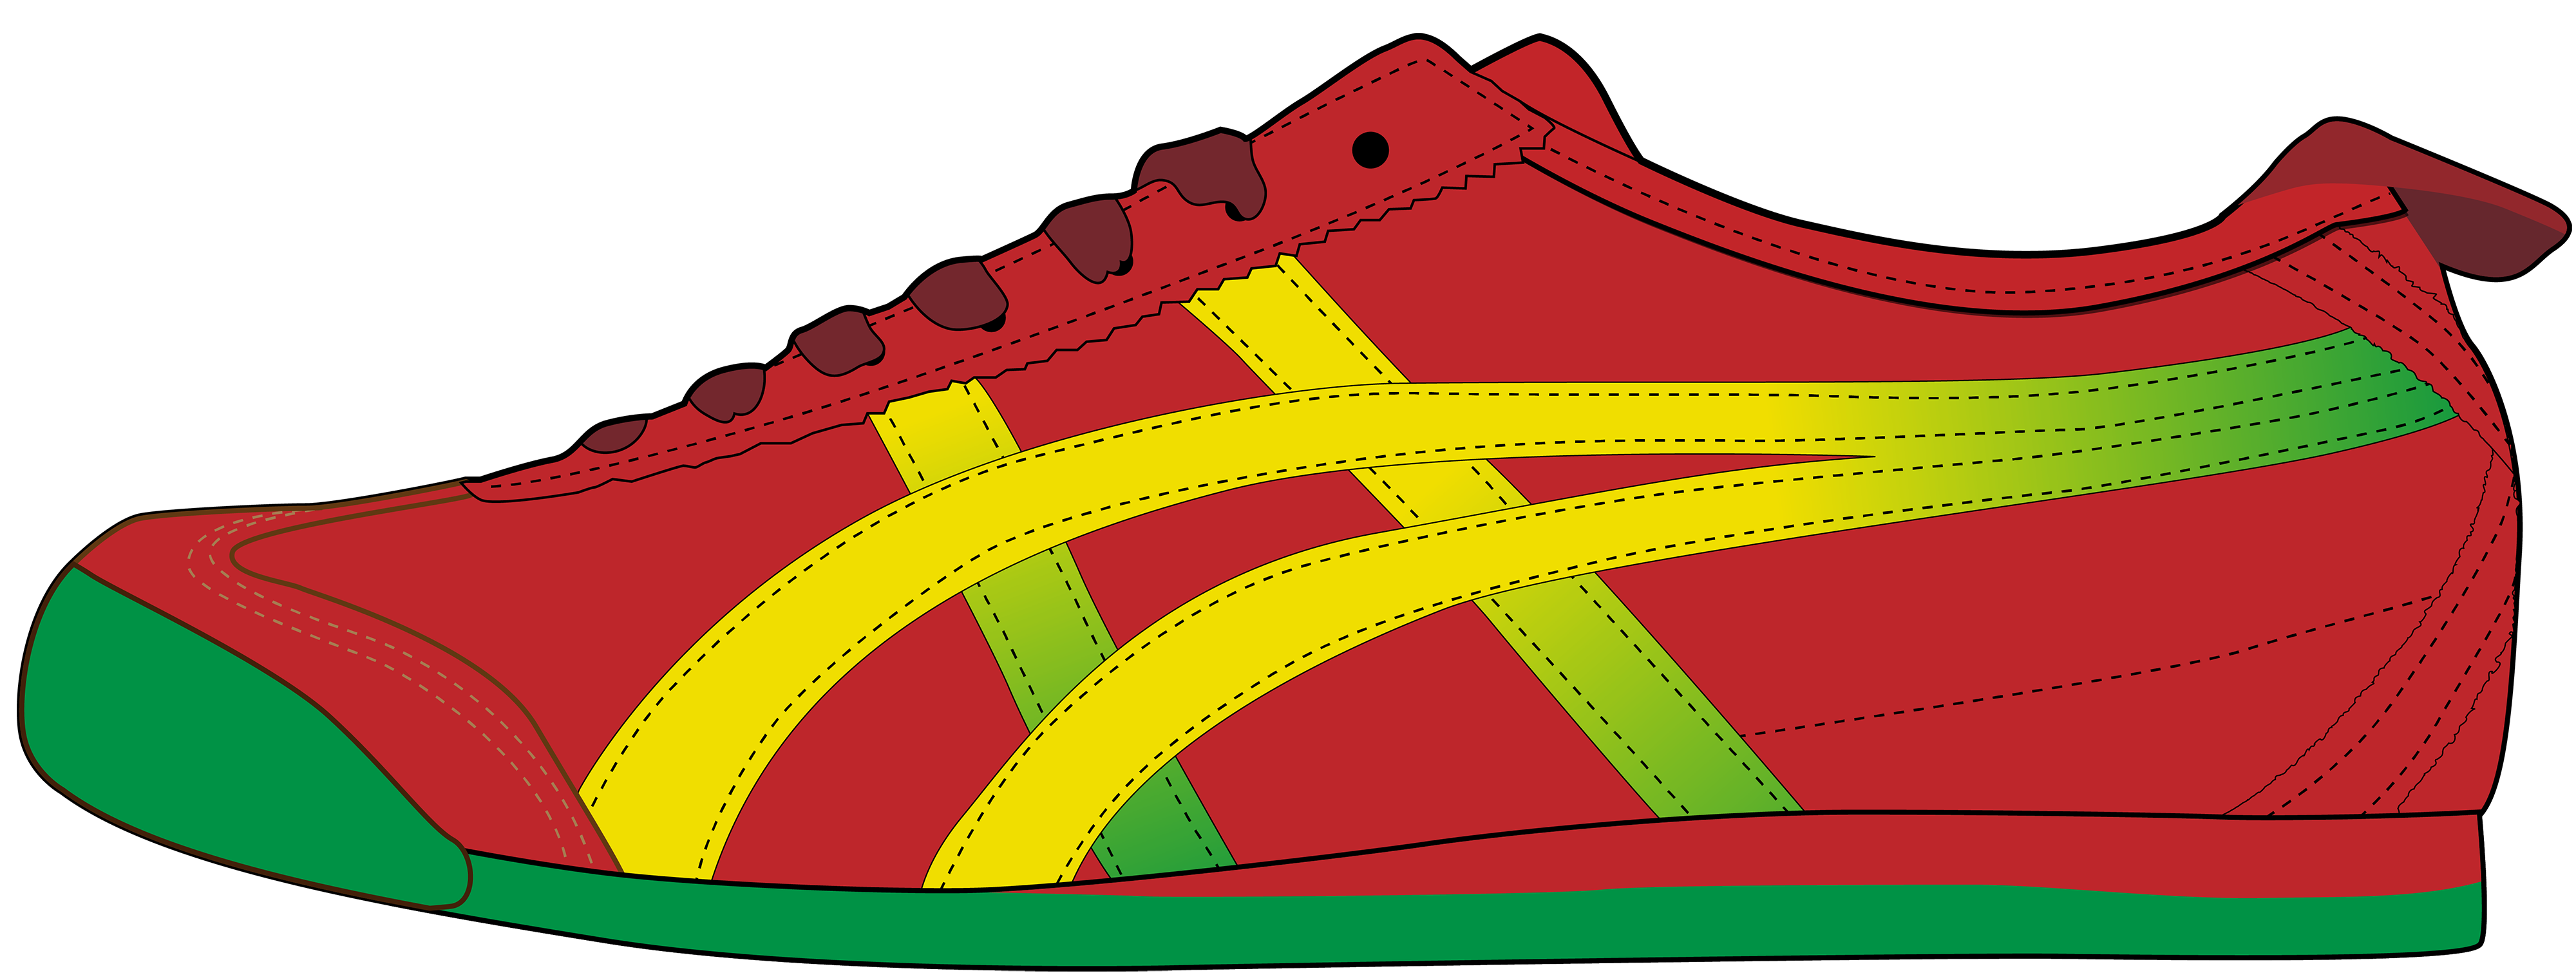 Shoes clipart foot wear. Shoe at getdrawings com